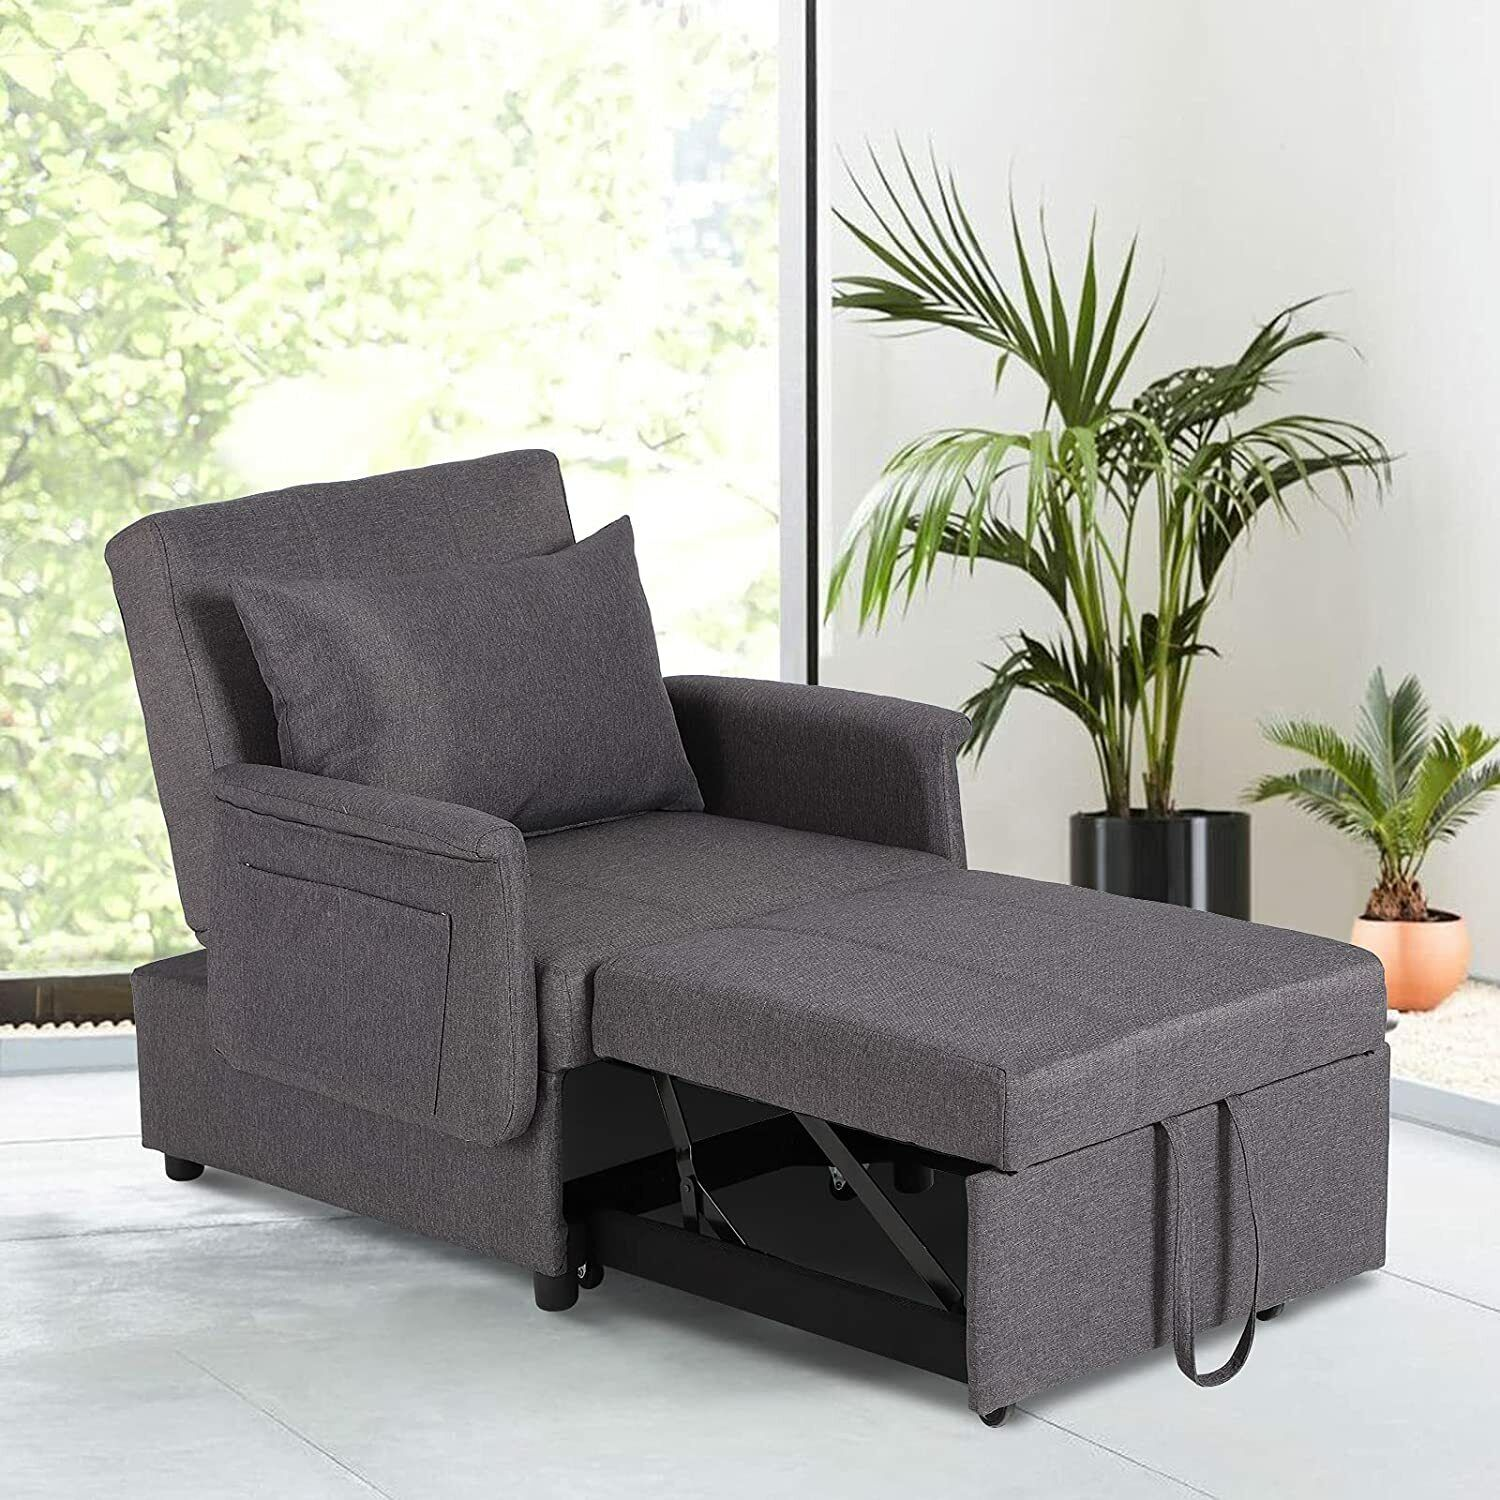 Convertible Sofa Bed 2-in-1 Folding Sleeper Leisure Recliner